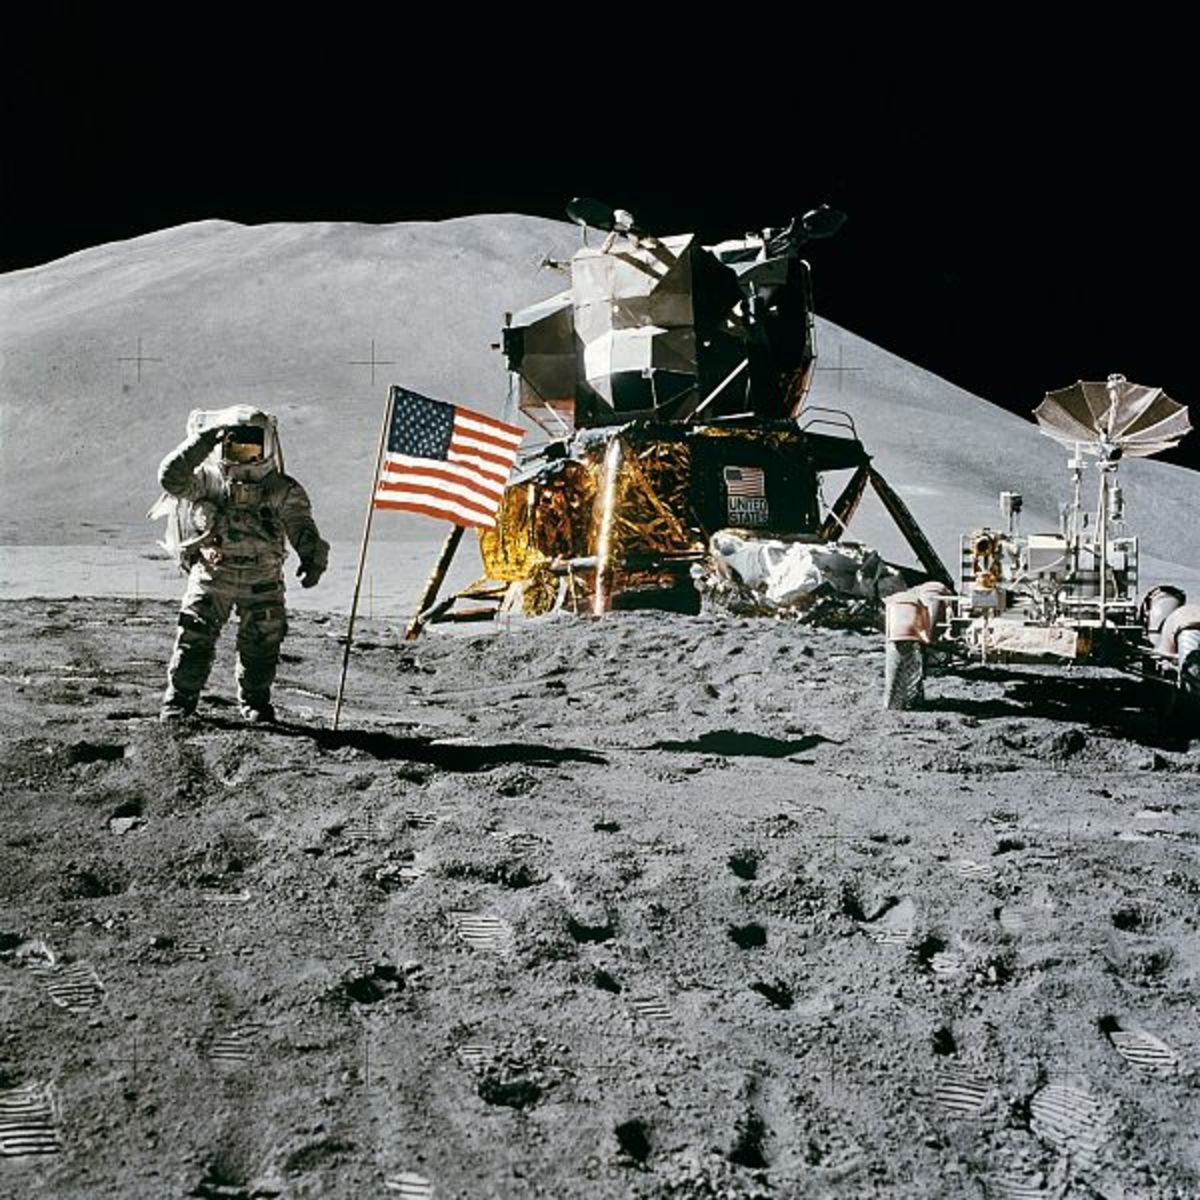 Galileo first uncovered the mysteries of the Moon in 1608. 360 years later, in 1969, the Apollo Moon Mission landed the first people on the Earth's nearest satellite: the Moon.